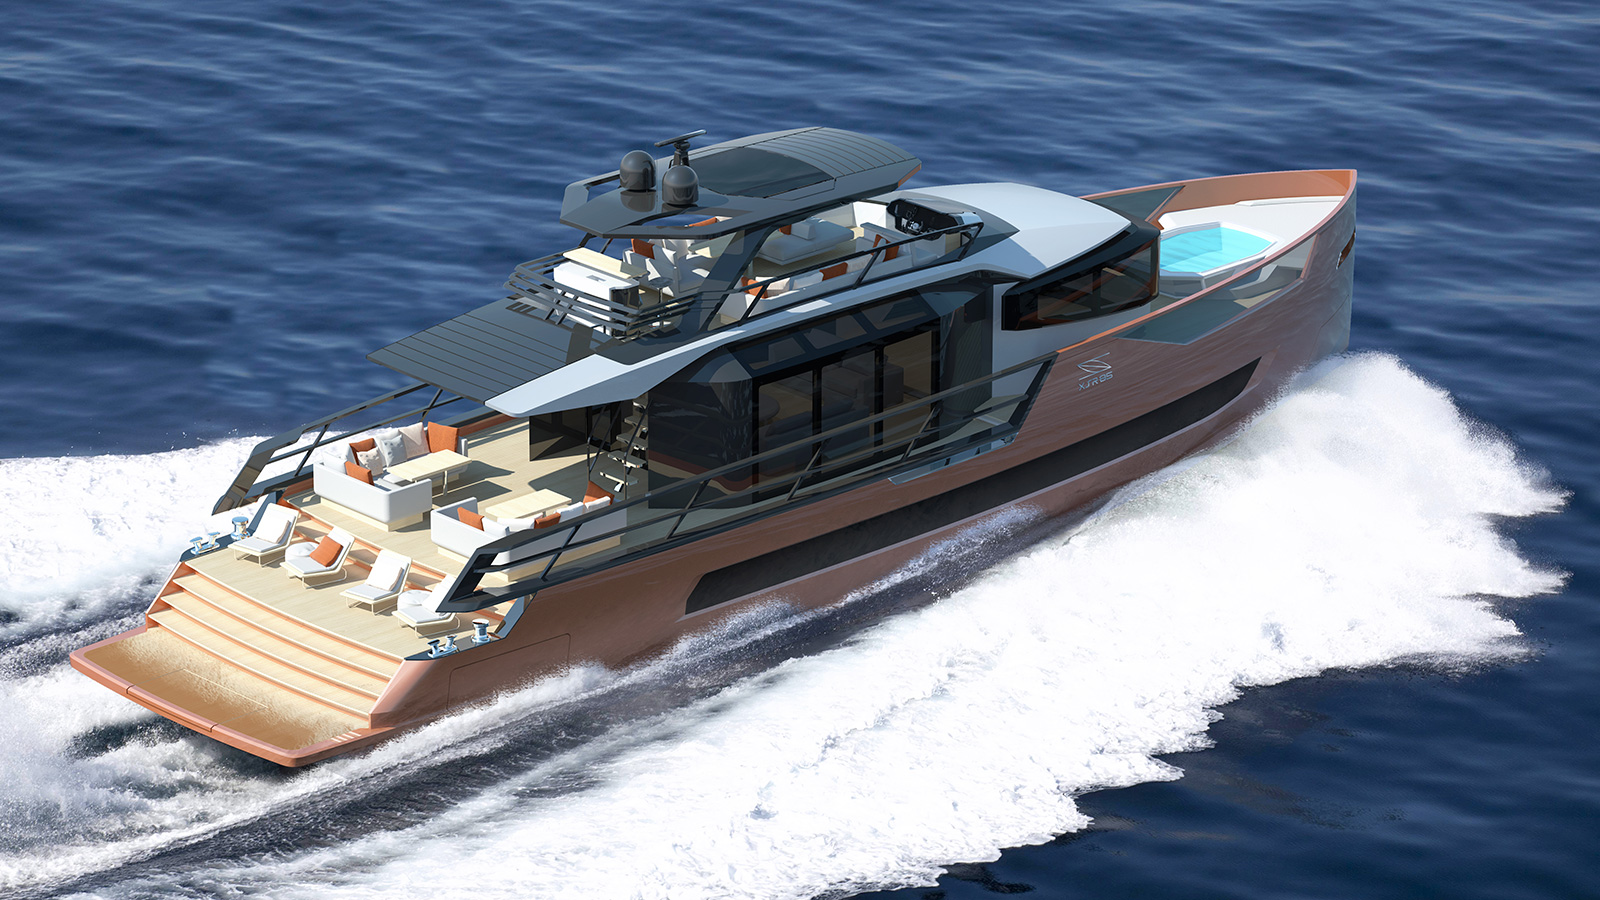 aft-running-shot-of-the-sarp-yachts-xsr-85